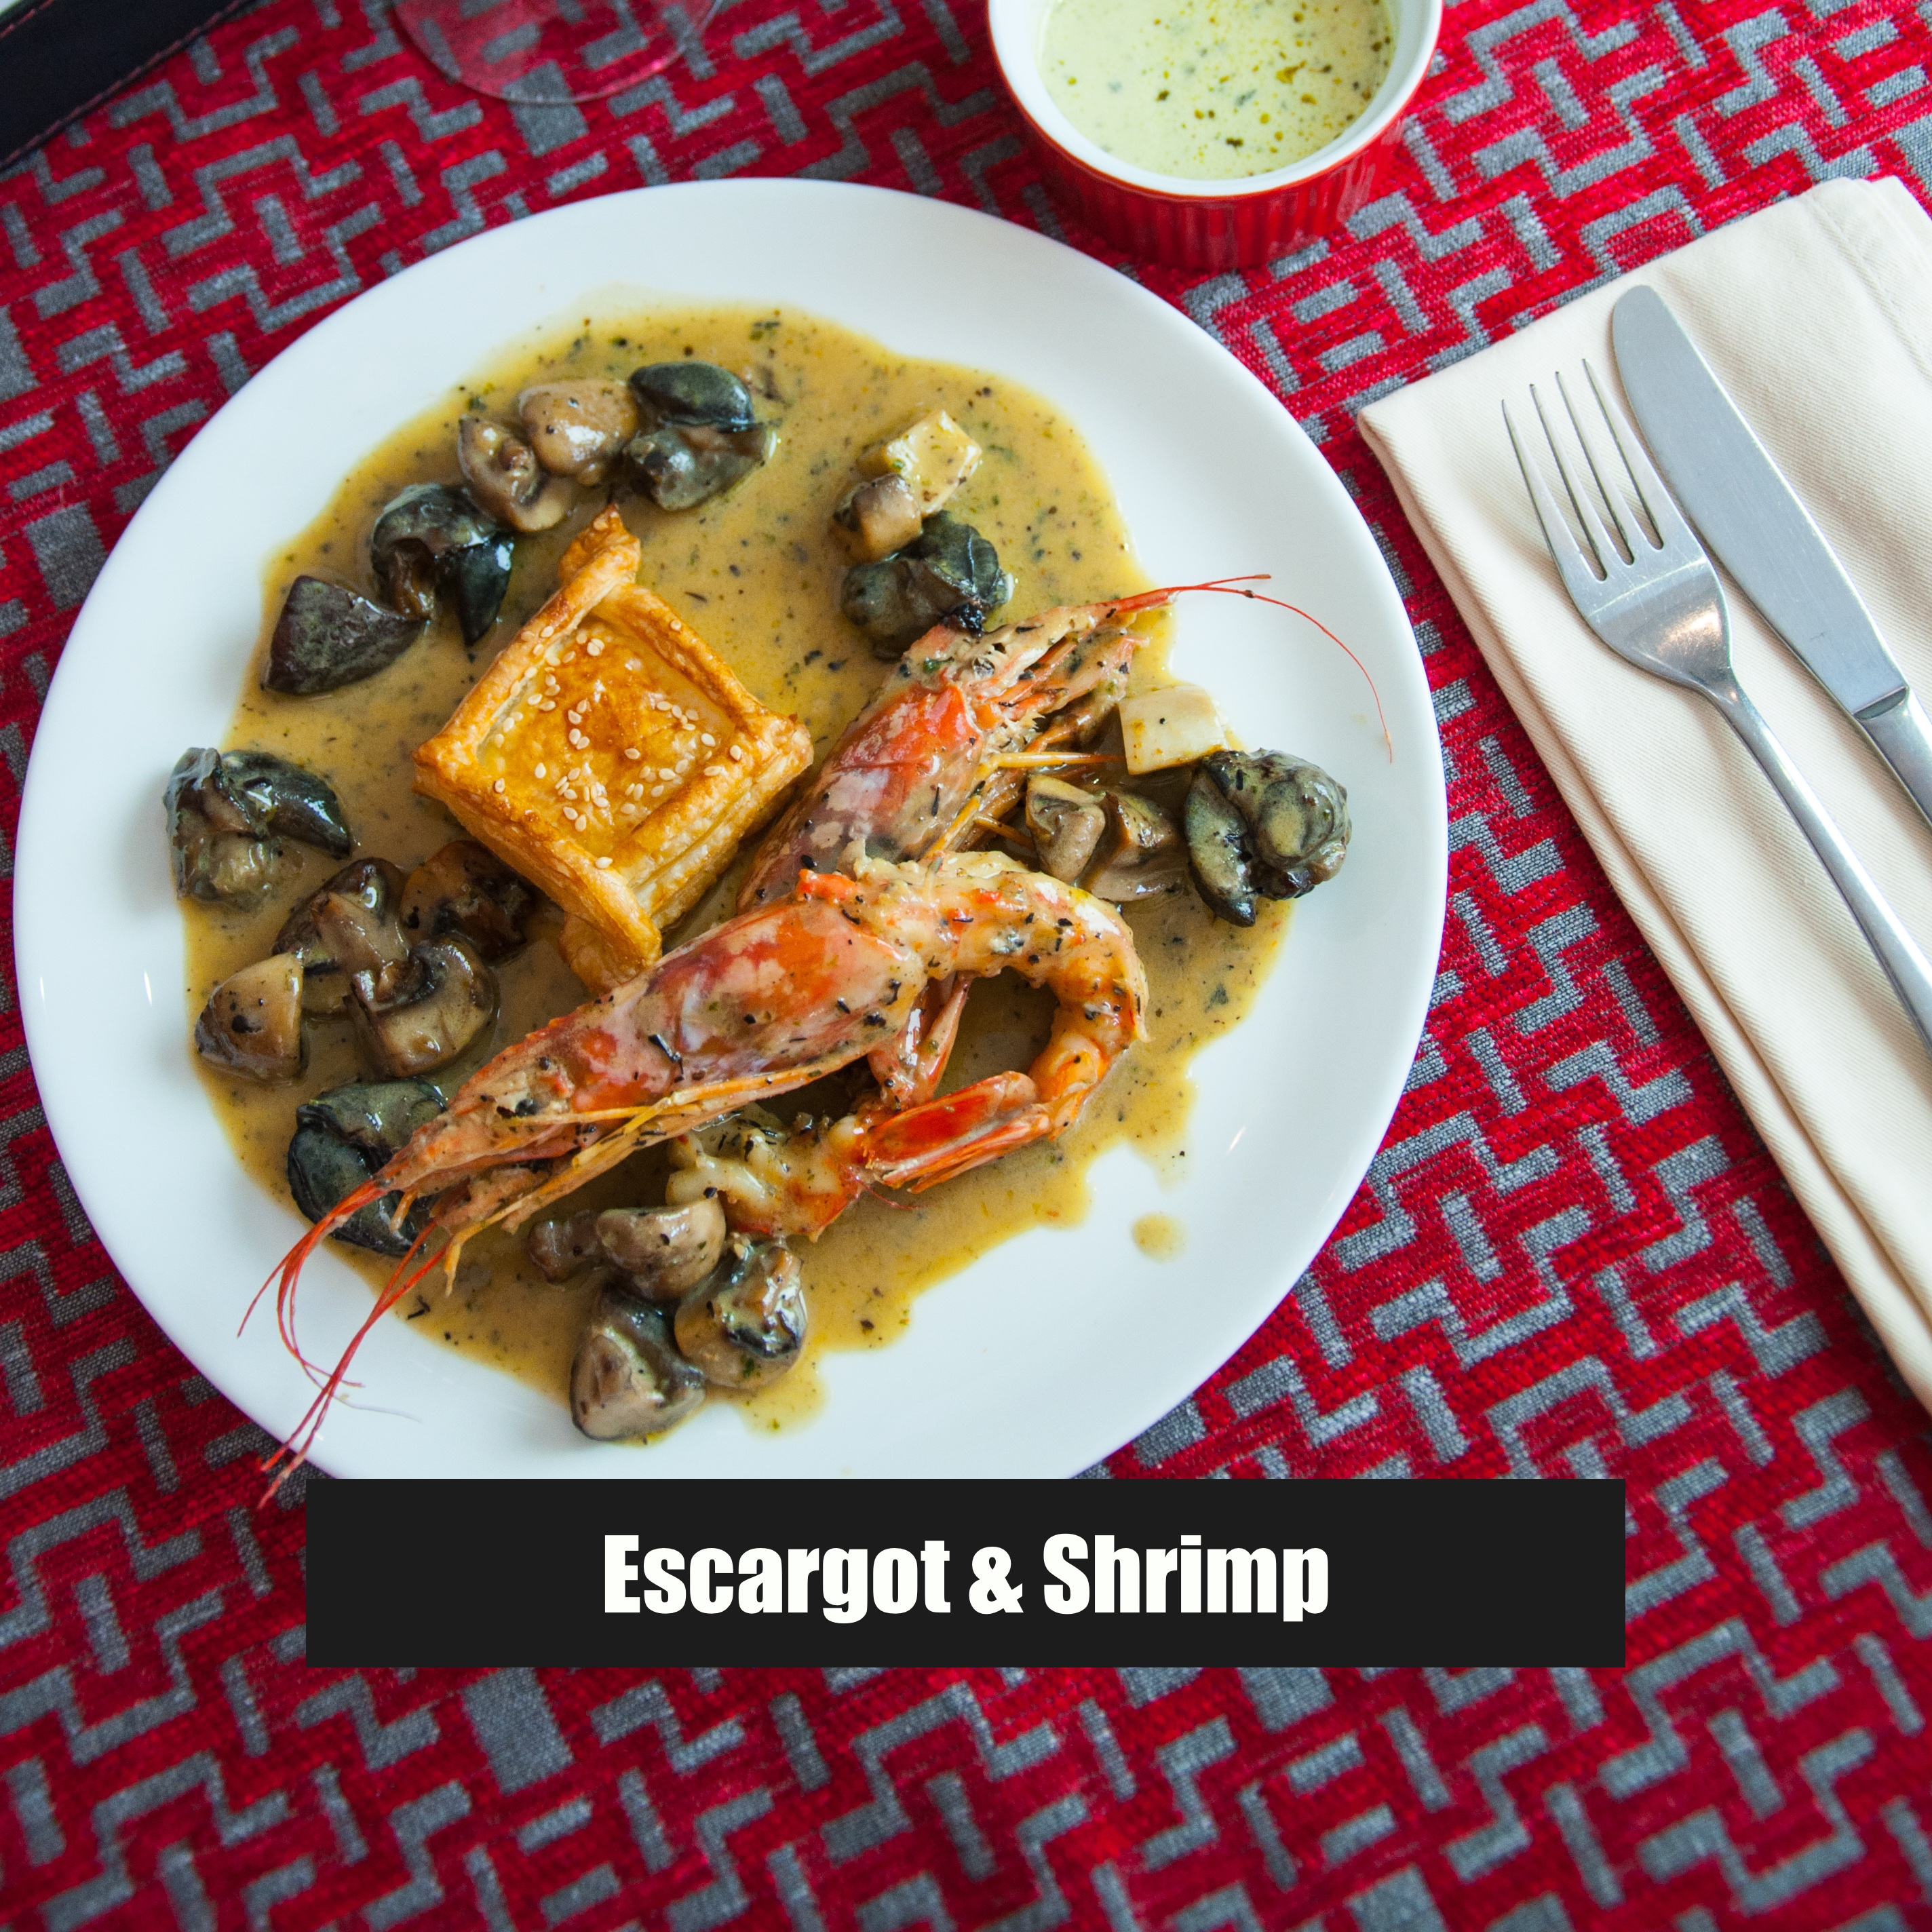 Escargot & Shrimp